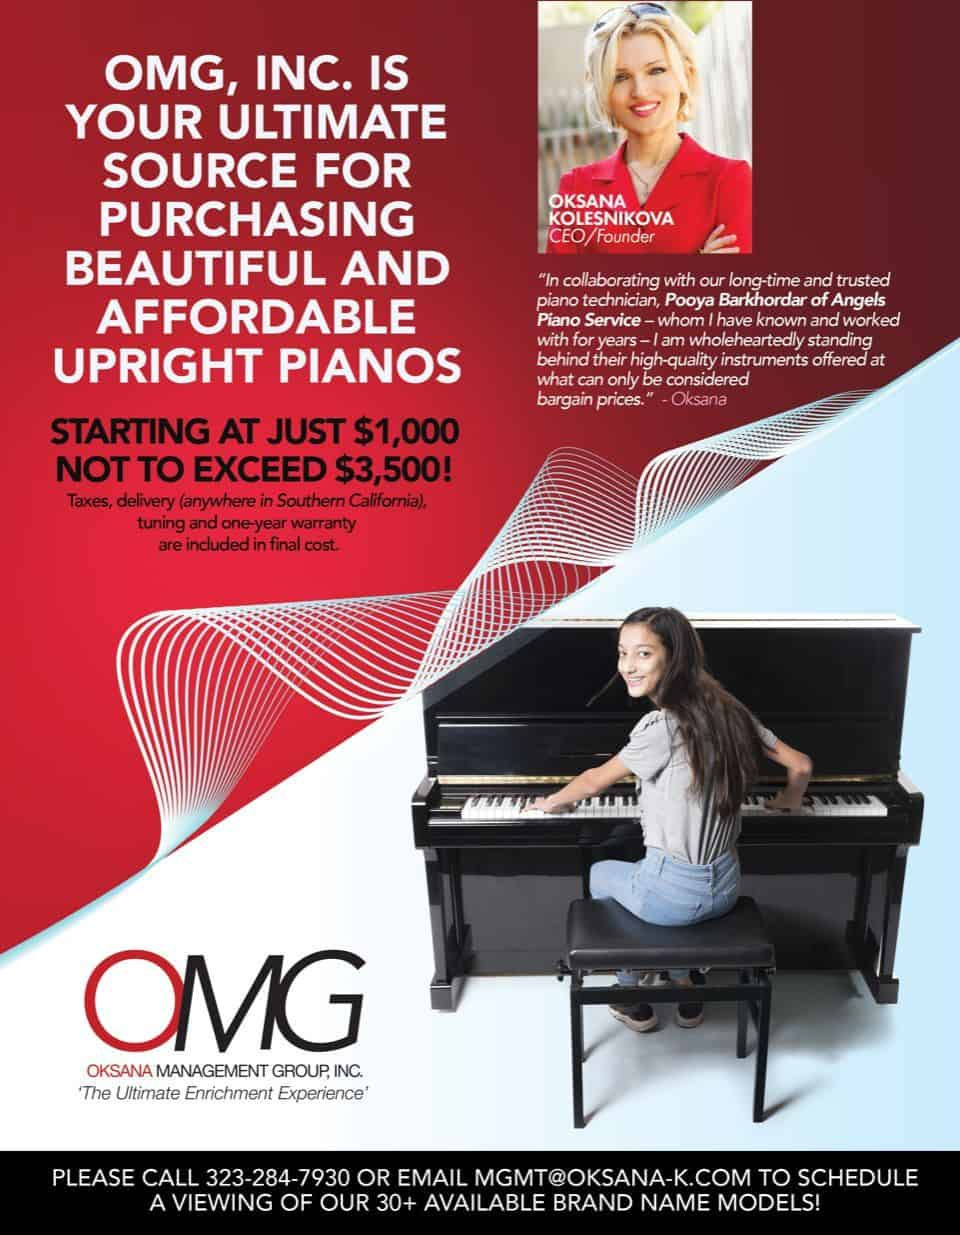 OMG endorsed pianos